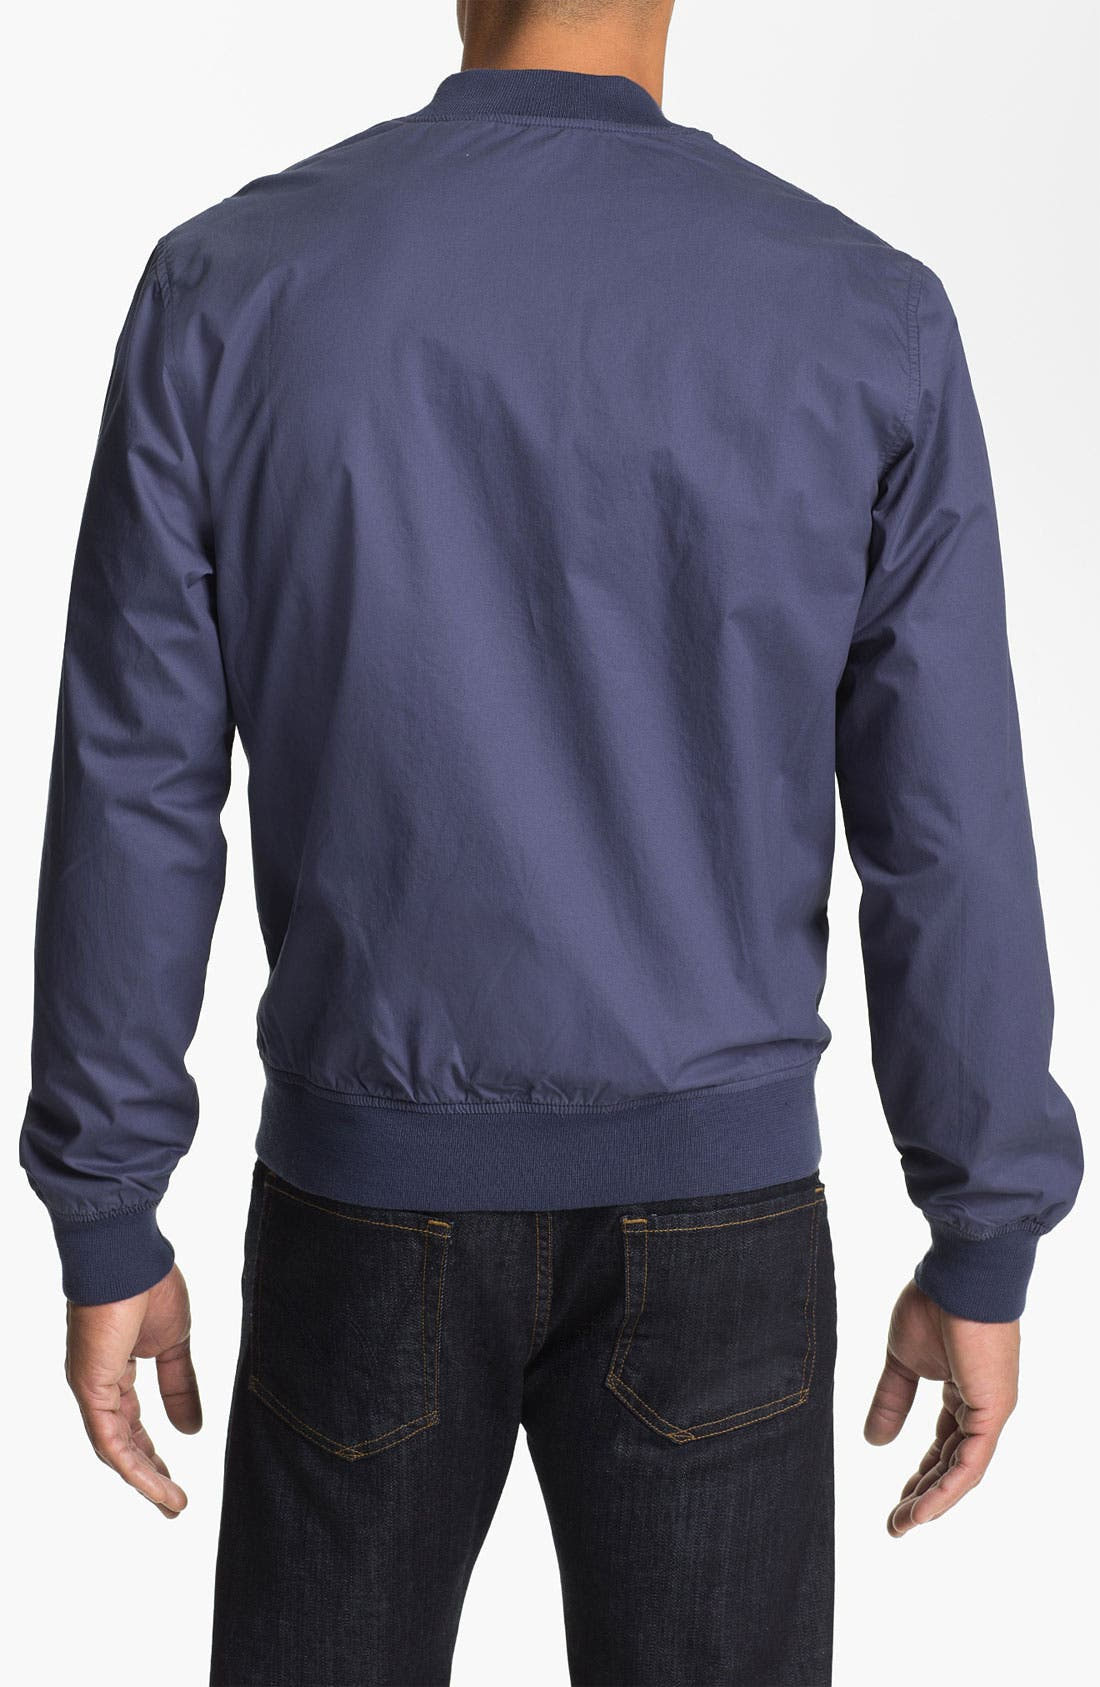 Alternate Image 2  - Cutter & Buck 'Edmonds Washed' Cotton Jacket (Big & Tall) (Online Only)